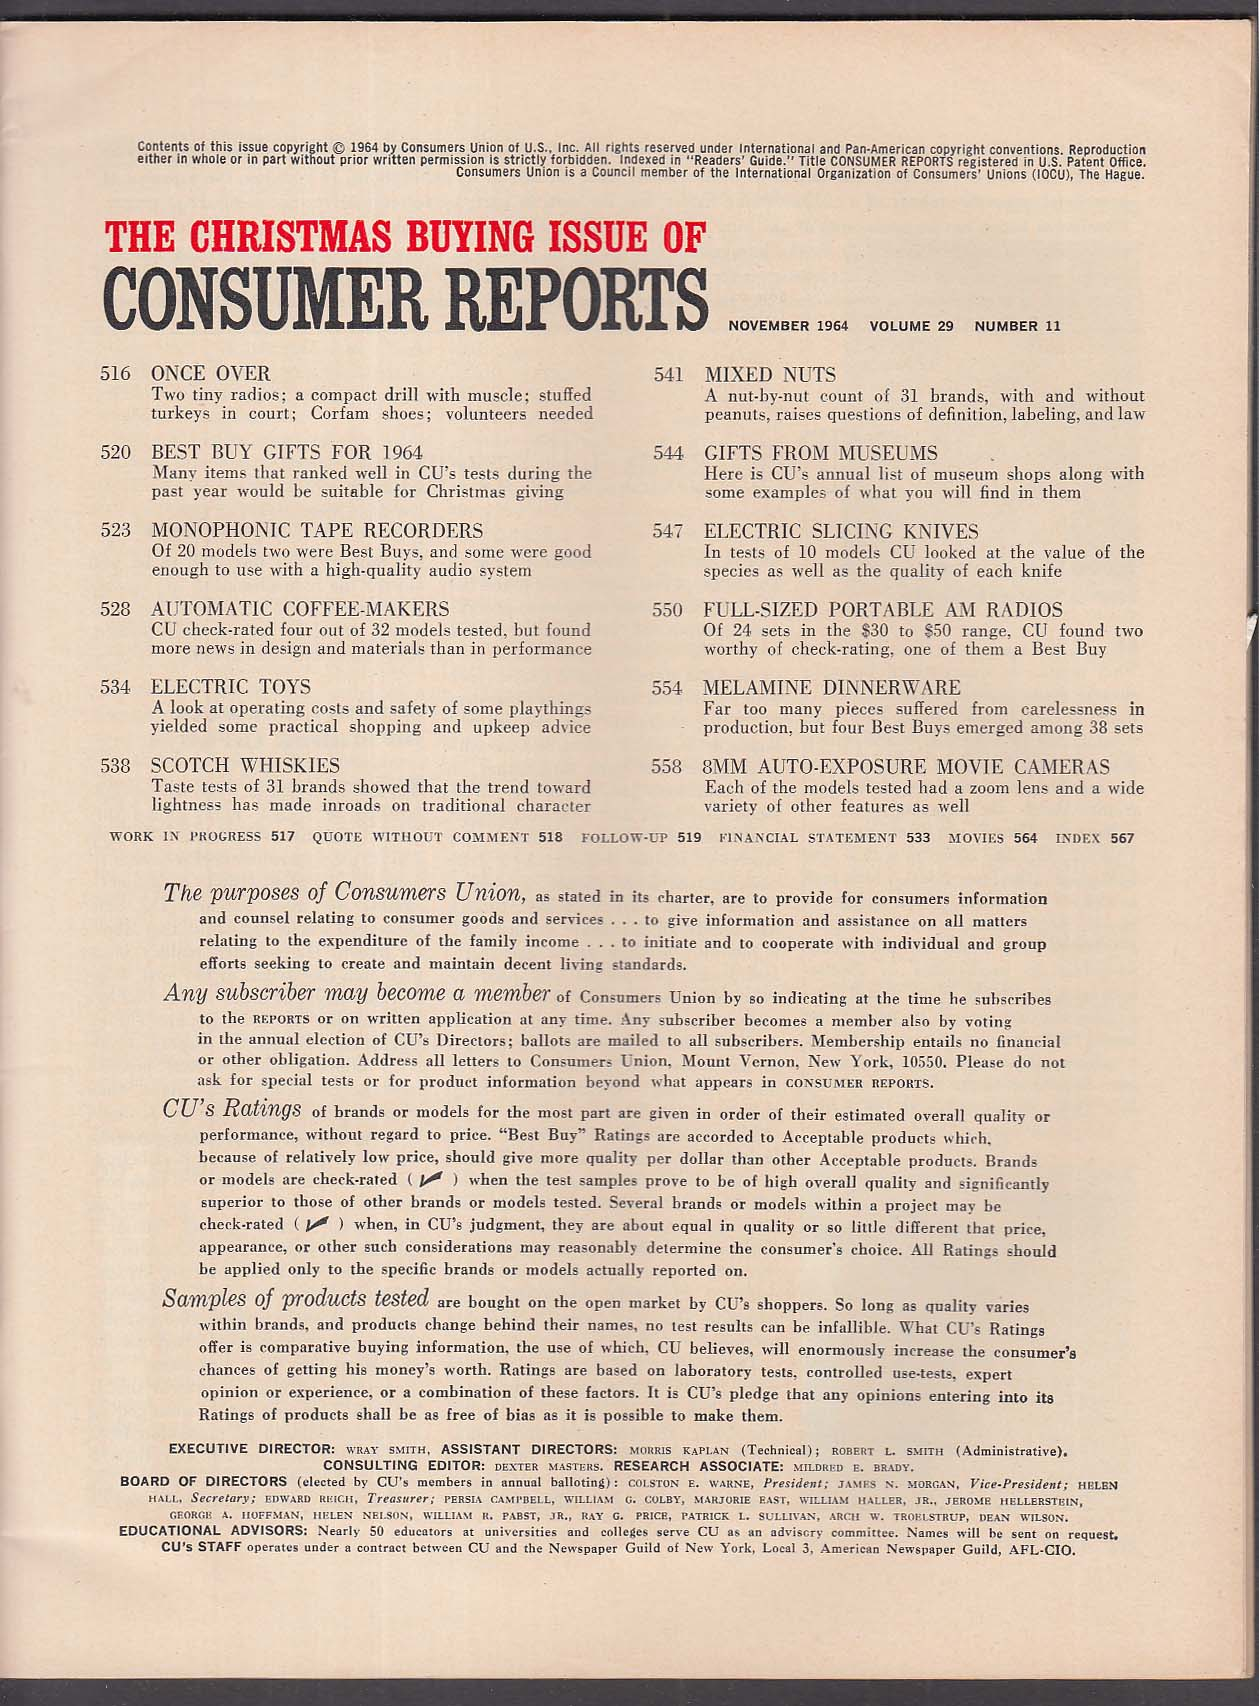 CONSUMER REPORTS Scotch Whiskies Electric Toys Coffee-Mkaers 8mm Cameras 11 1964